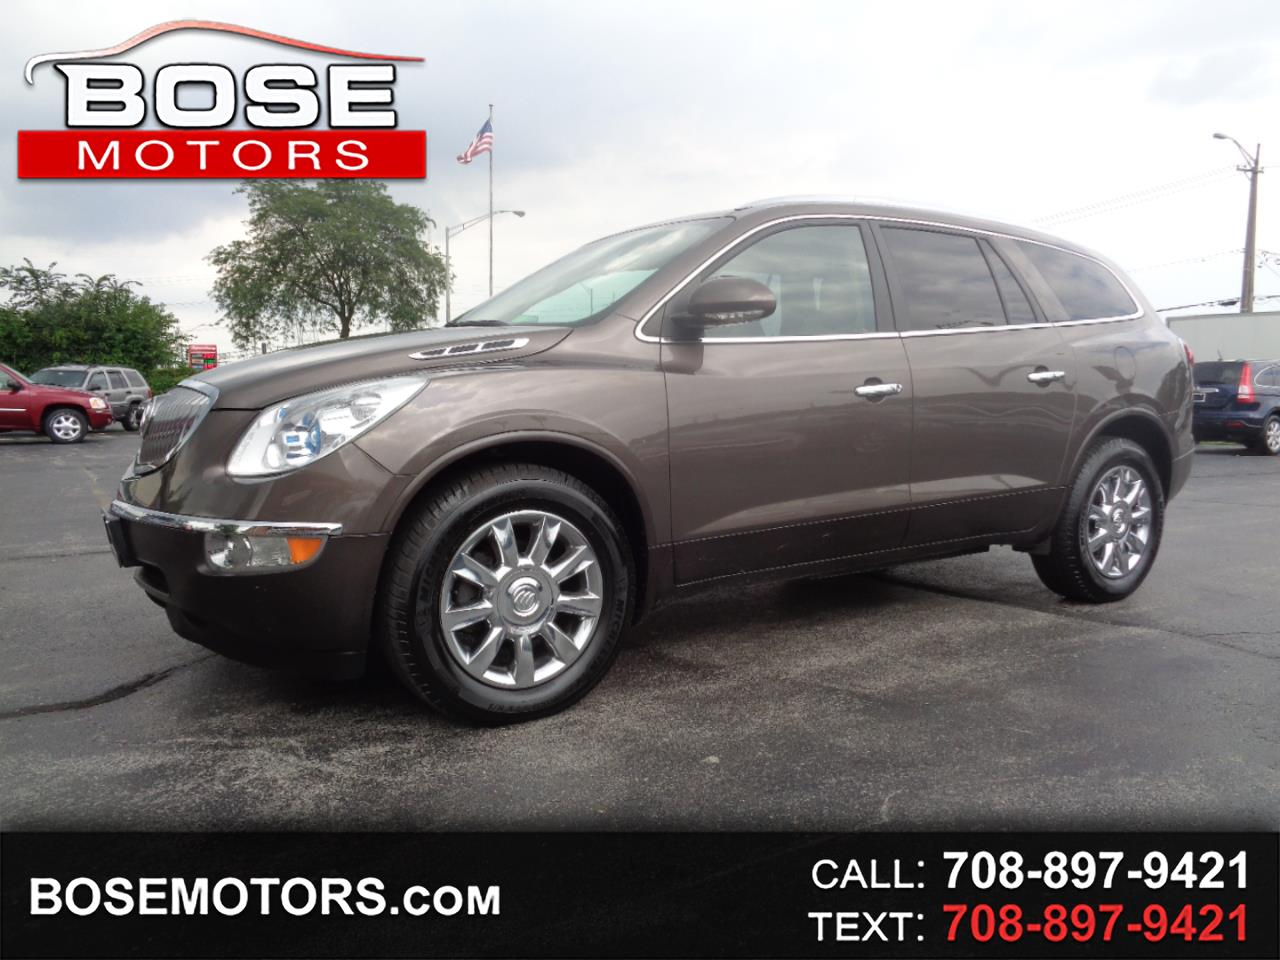 Used Cars for Sale Crestwood IL 60445 Bose Motors Inc